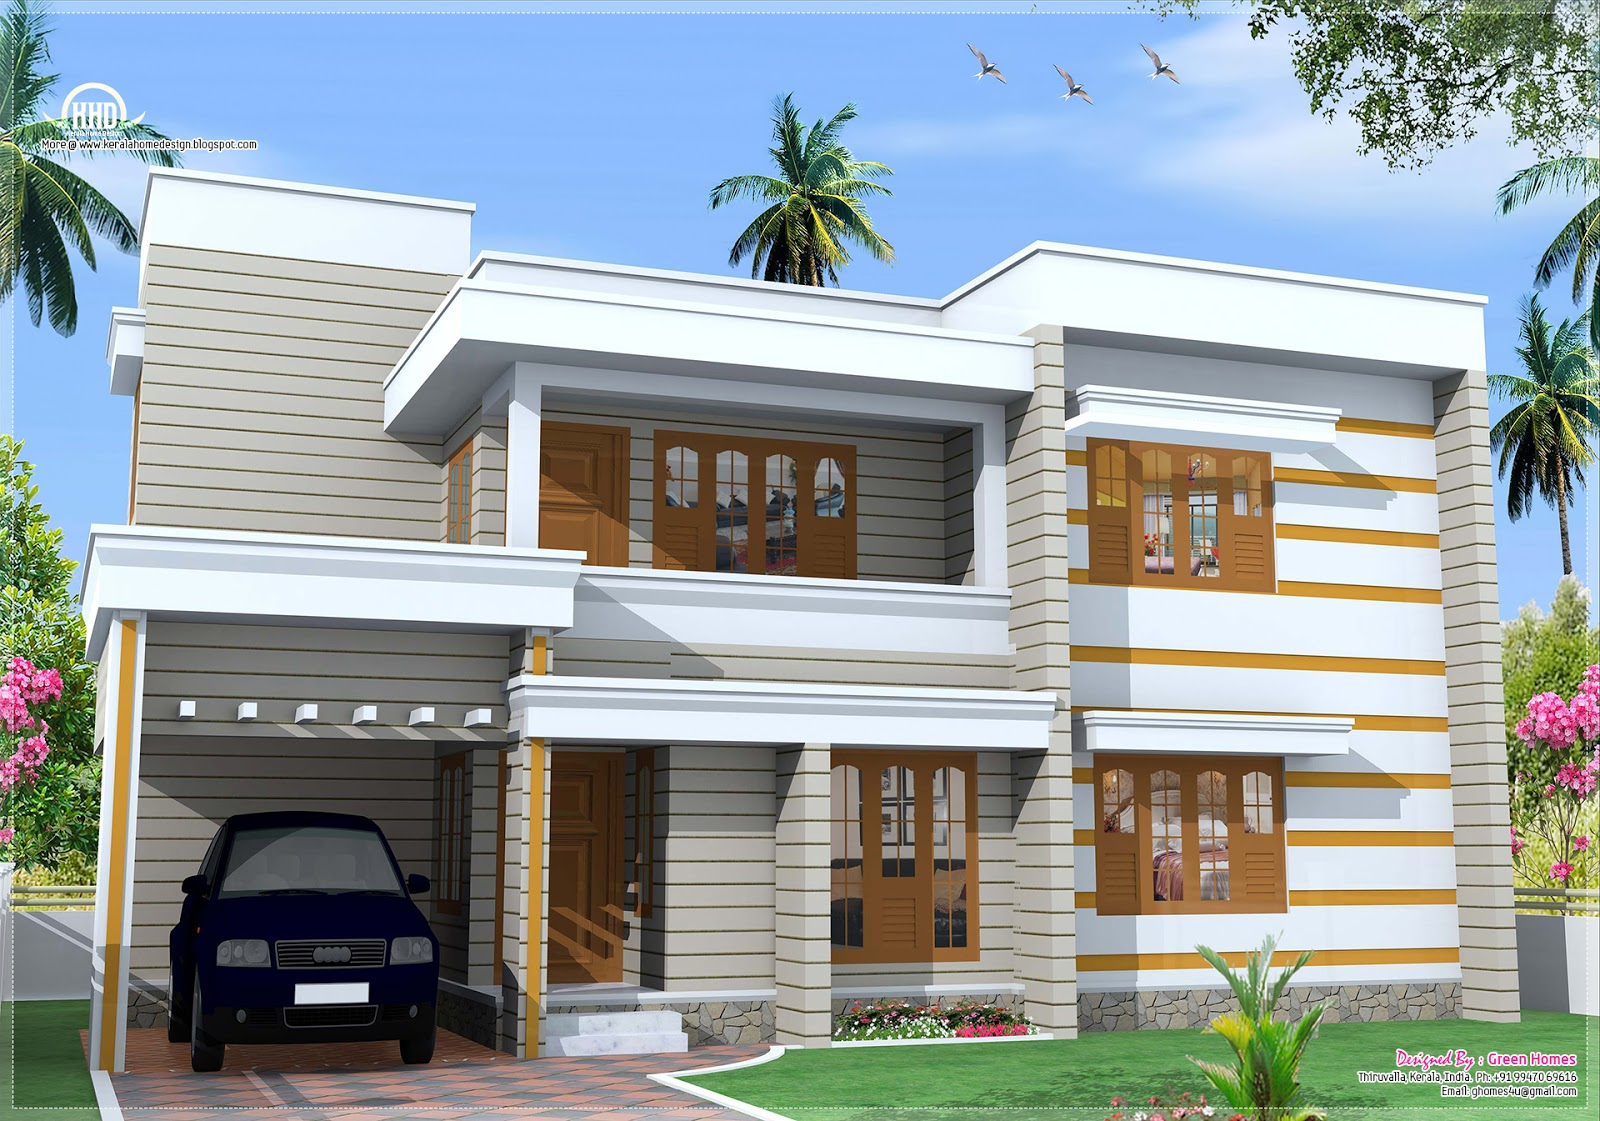 Roof Design Of House Chief Architect Roof Design Tips YouTube